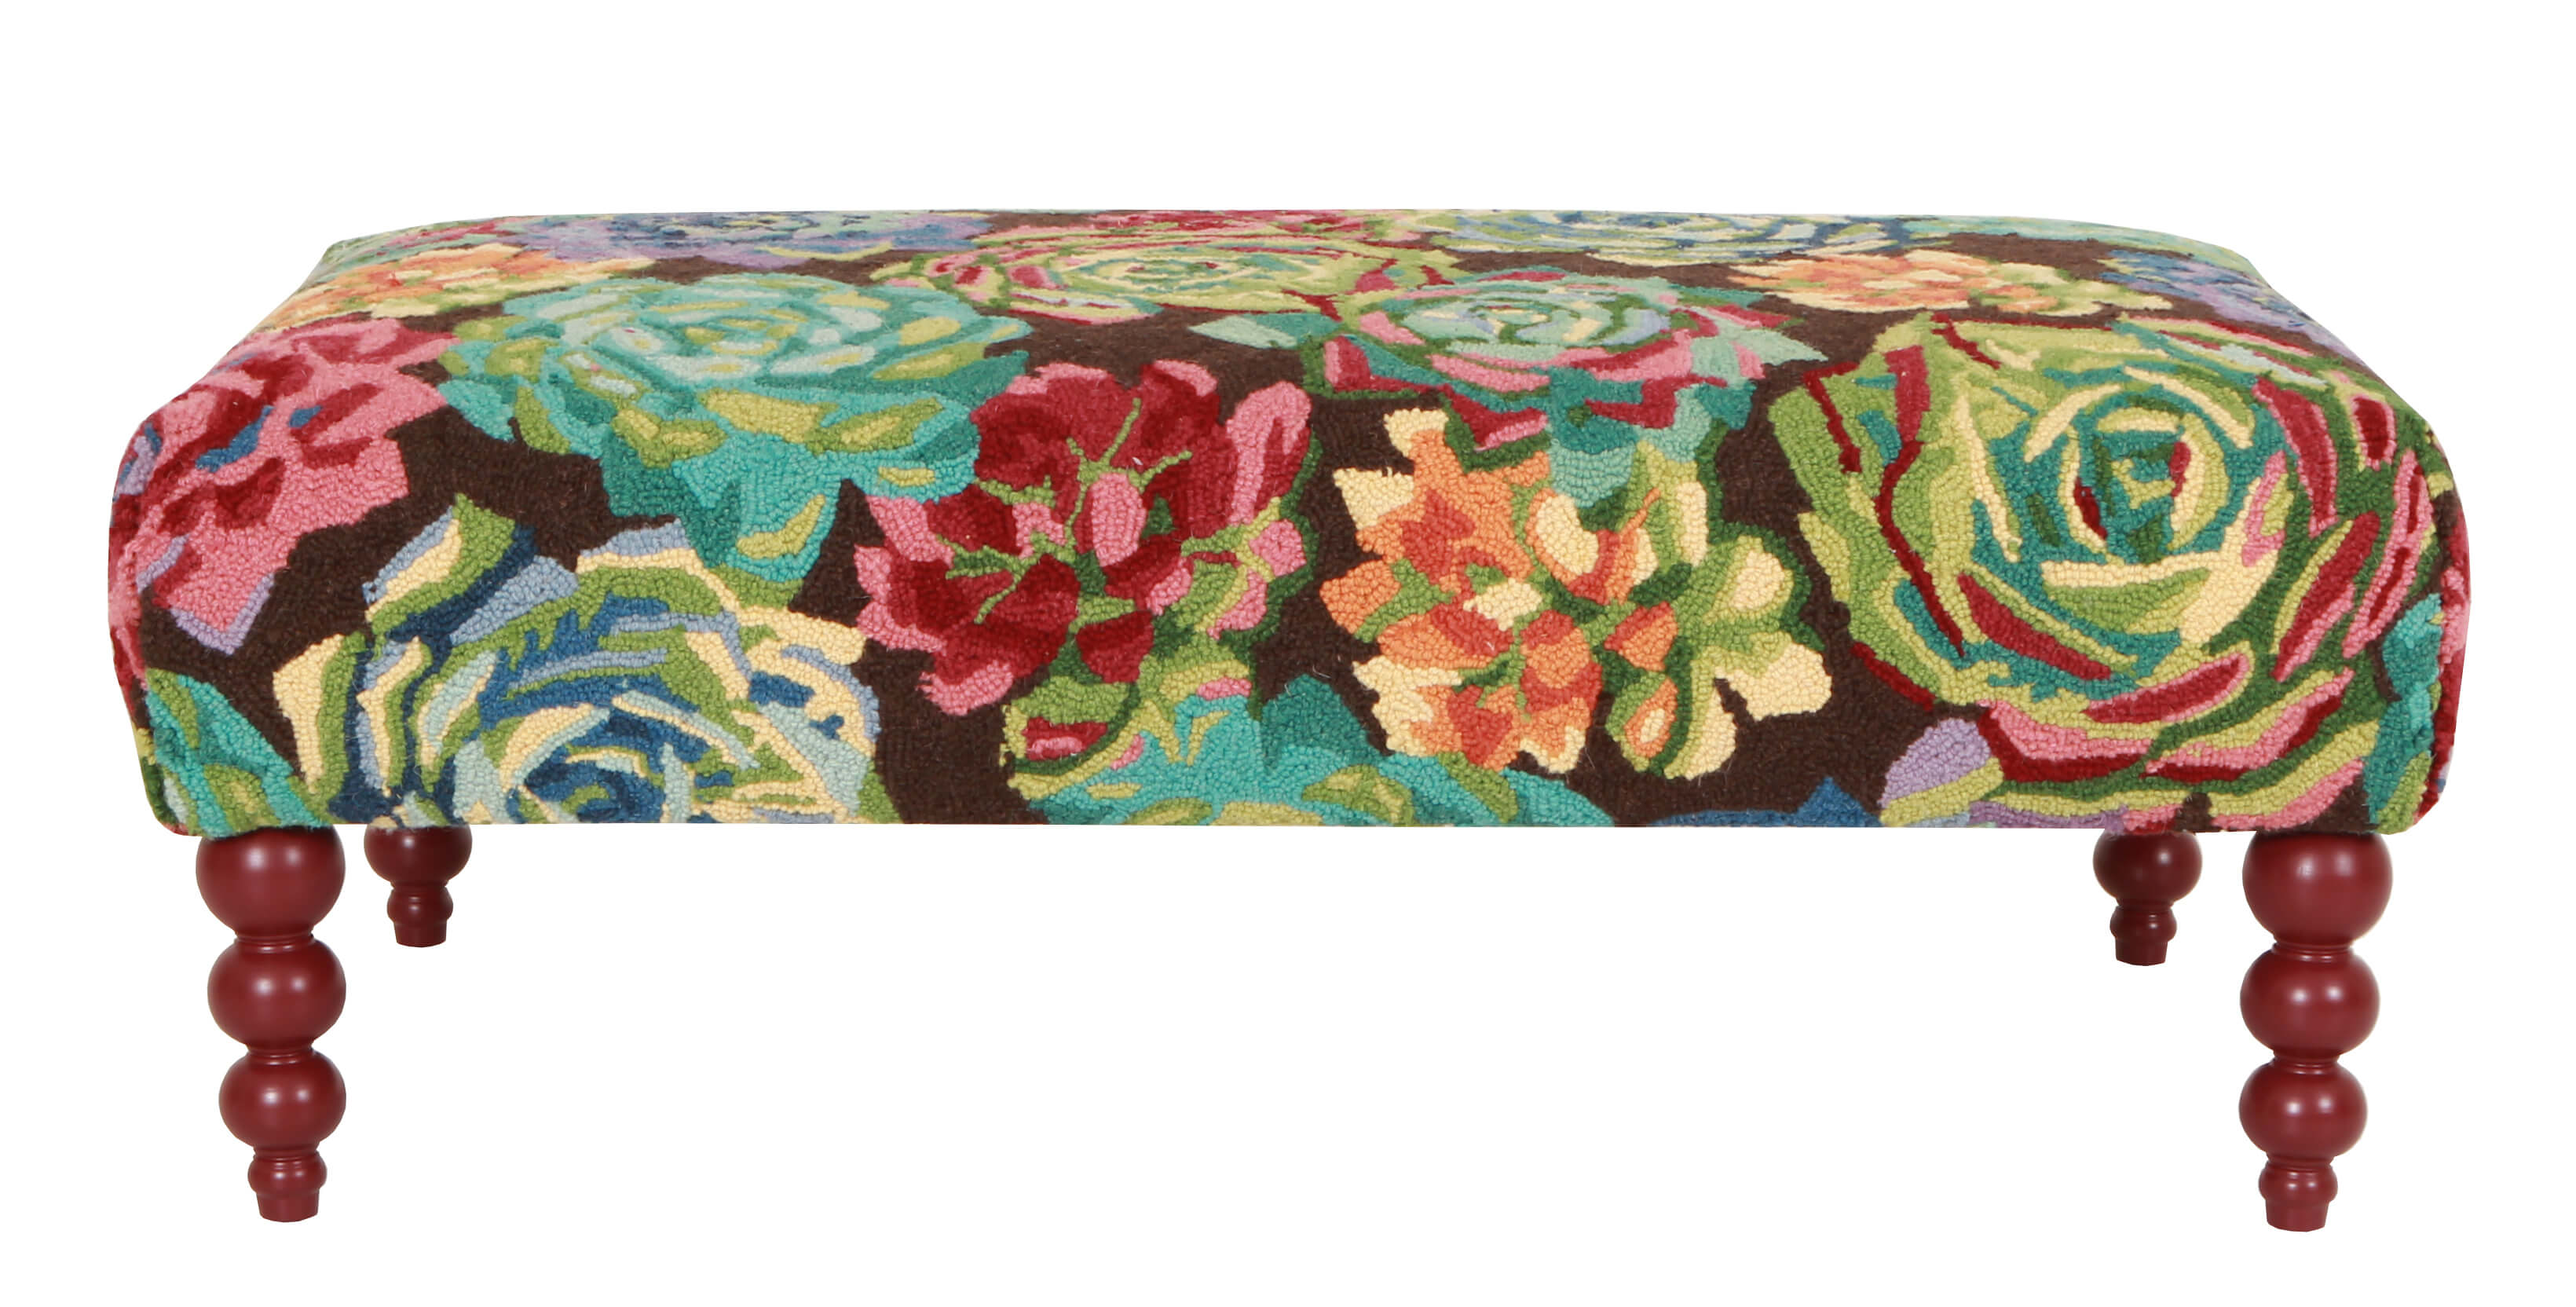 Rockport_Rug-Ottoman_Eclectic Collector